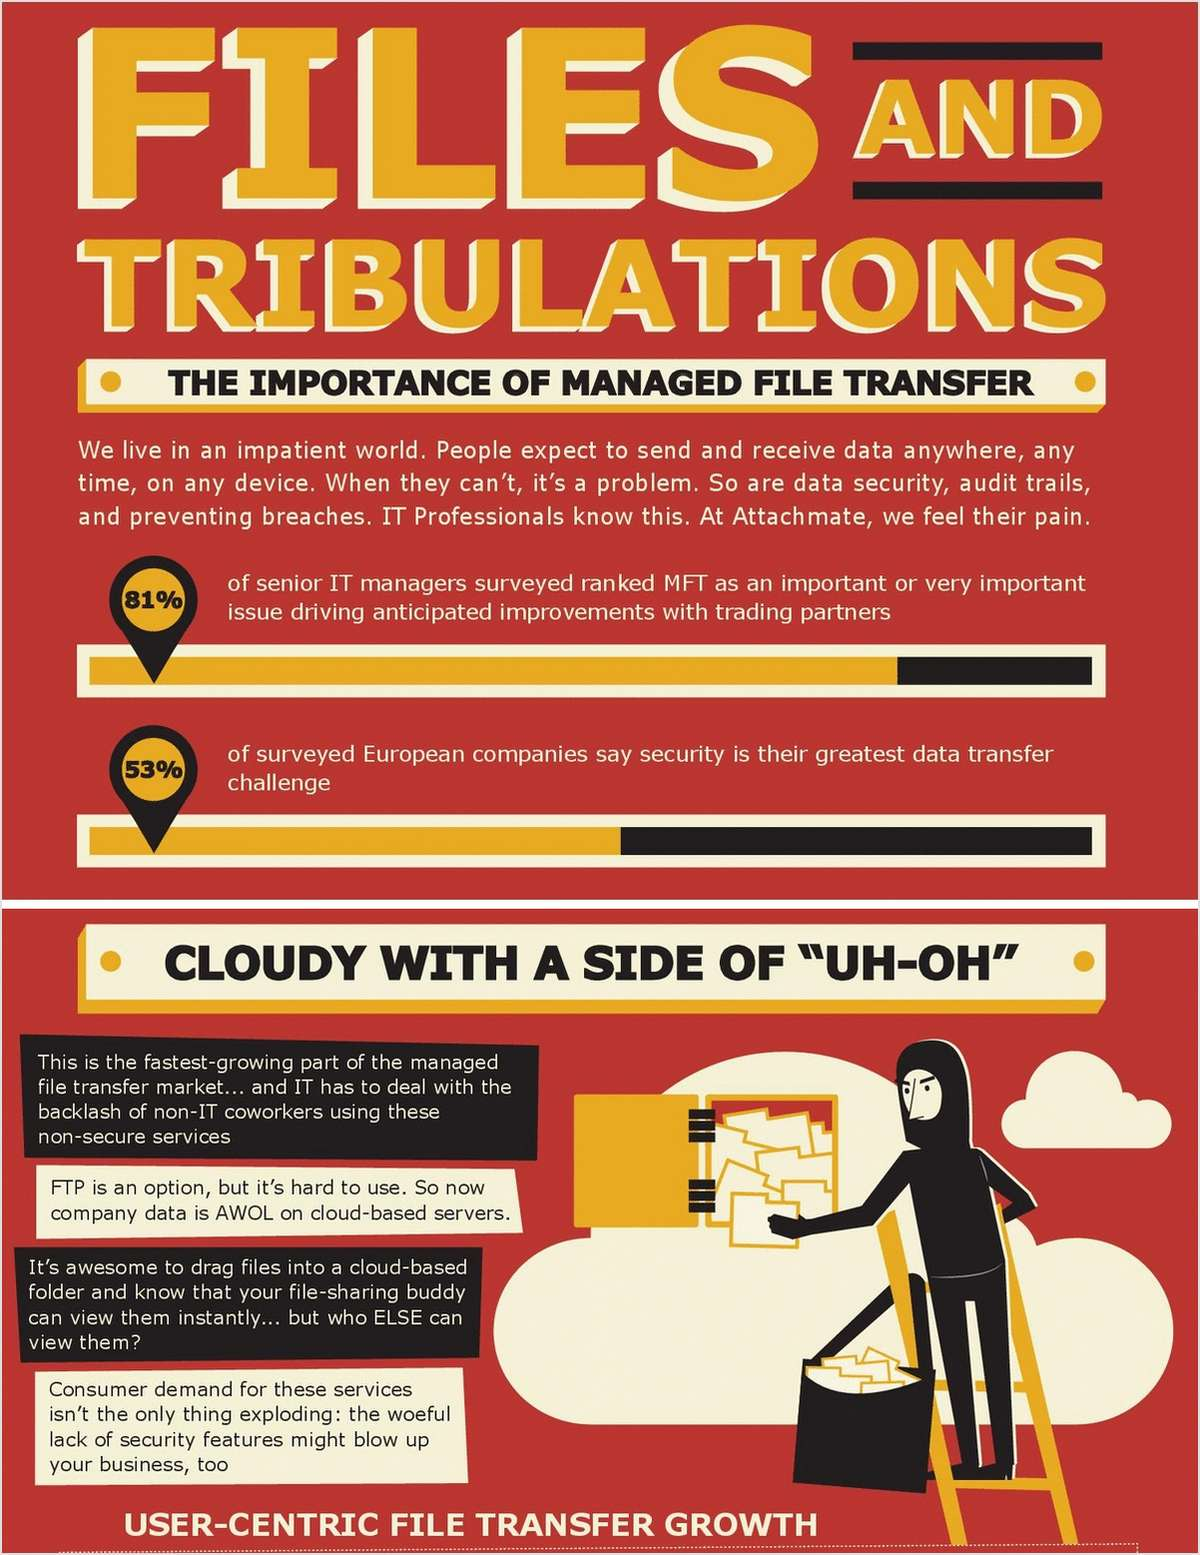 Files and Tribulations – The Importance of Managed File Transfer